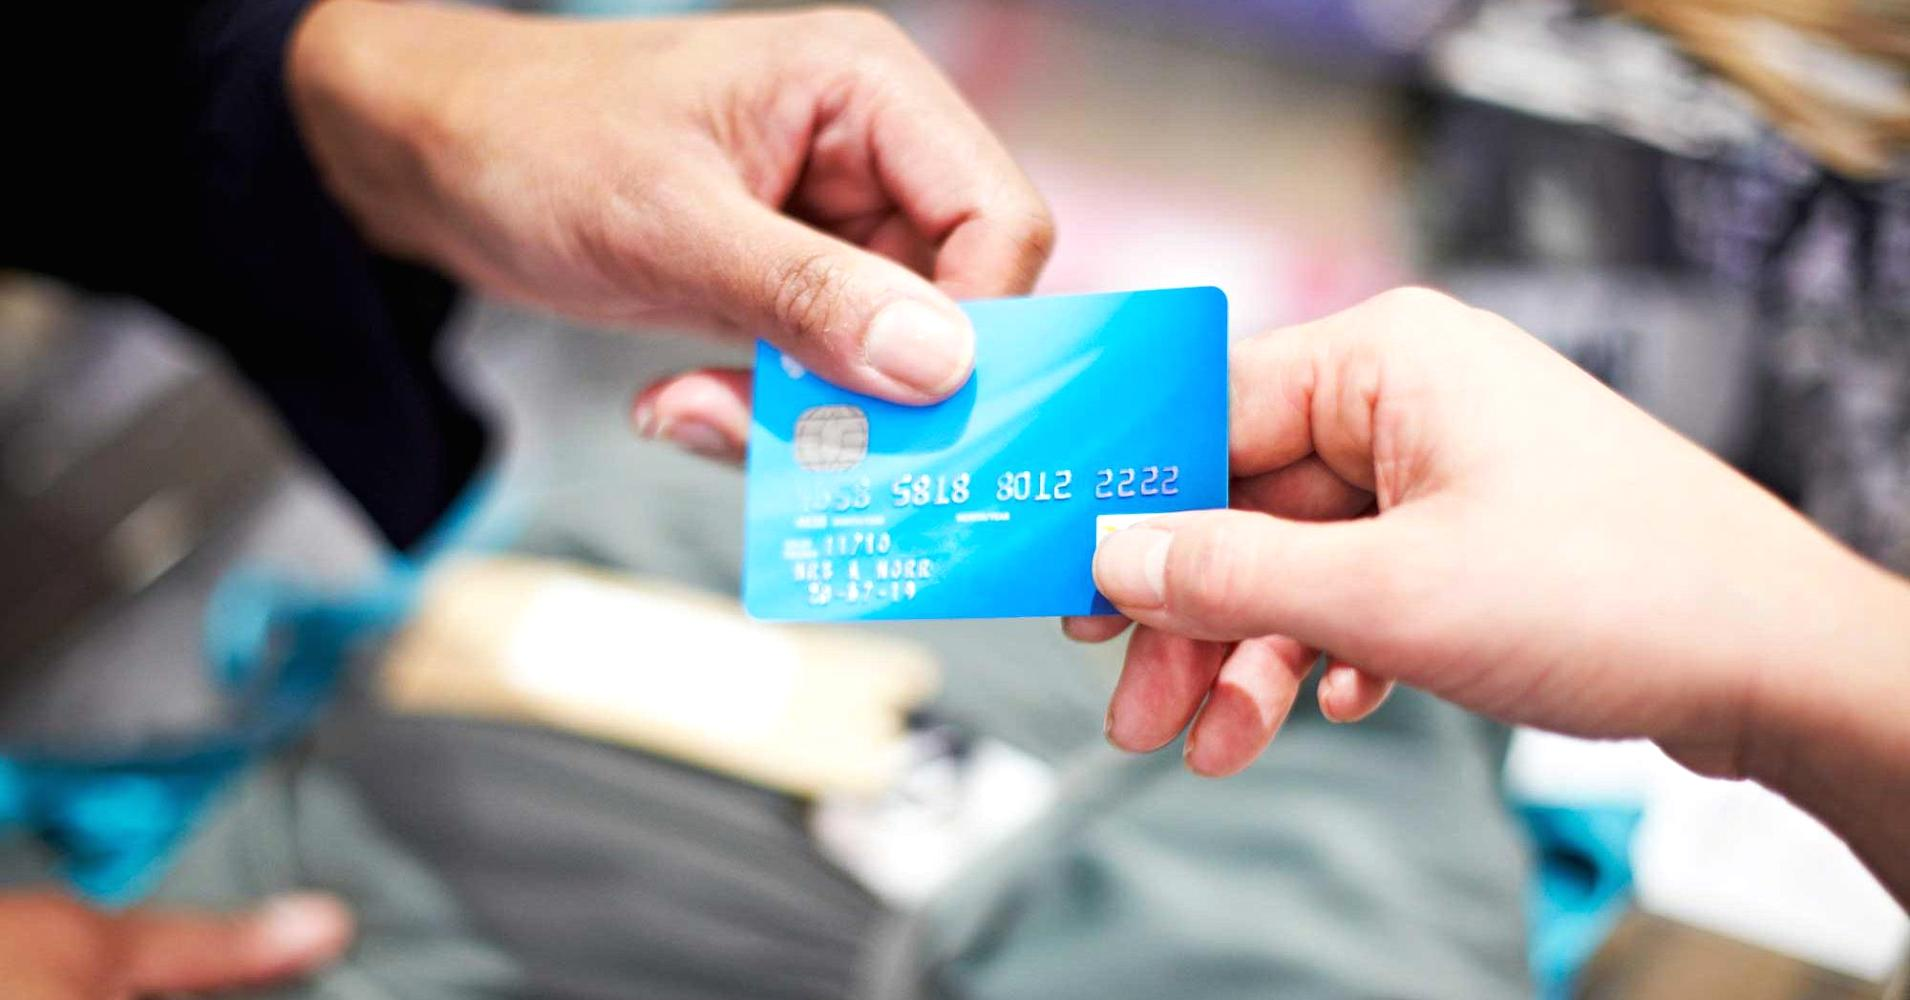 Things to Know Before Applying For SBI Credit Card Online